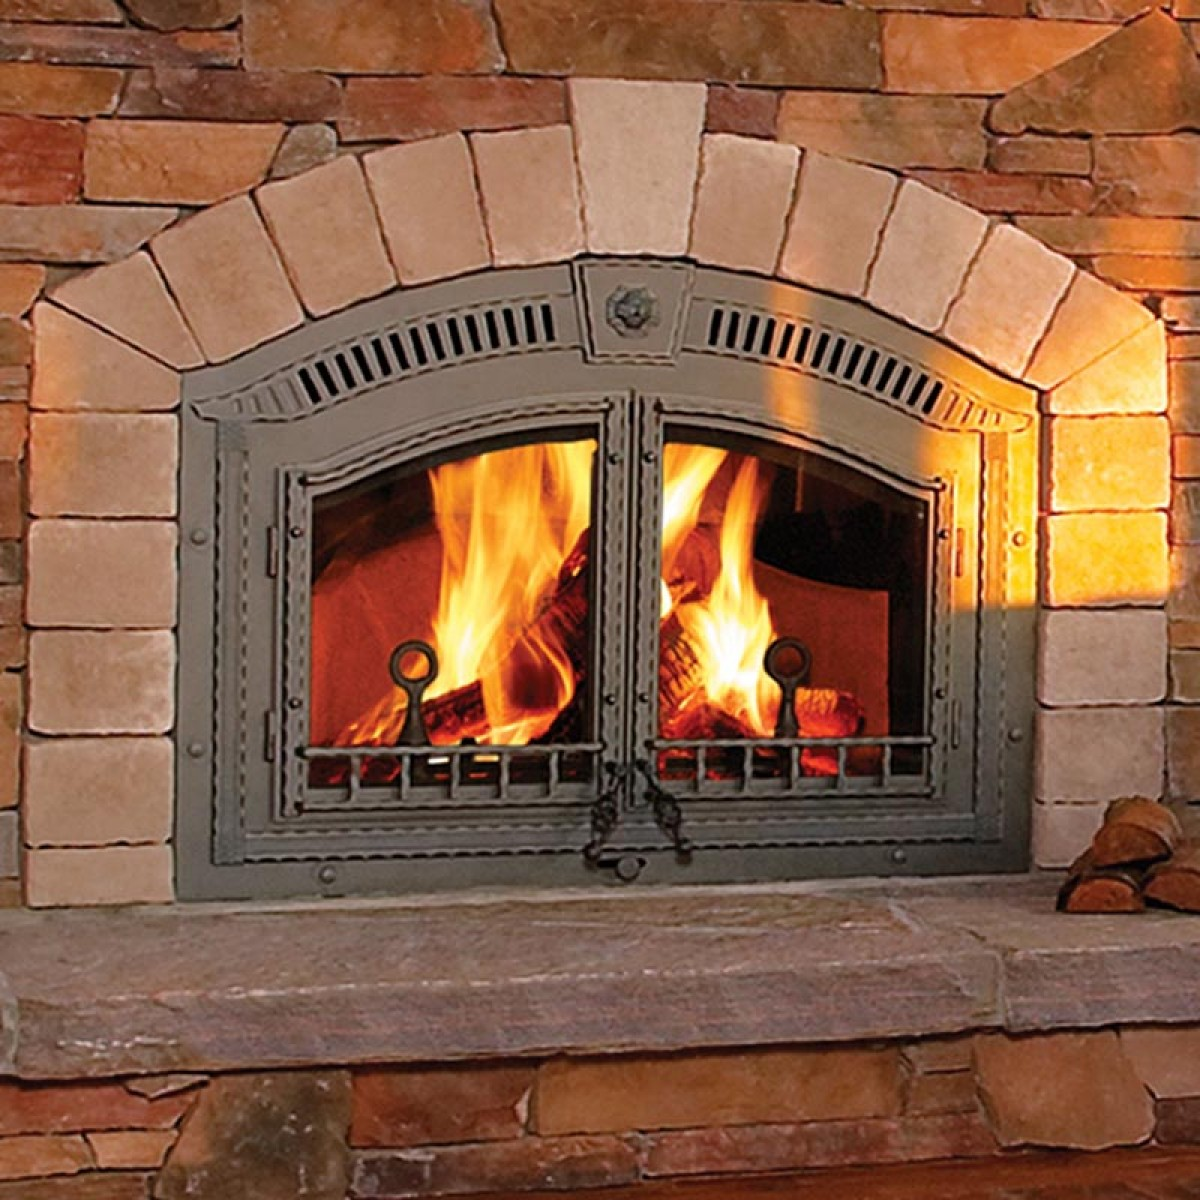 Napoleon Nz6000 High Country Wood Burning Fireplace At